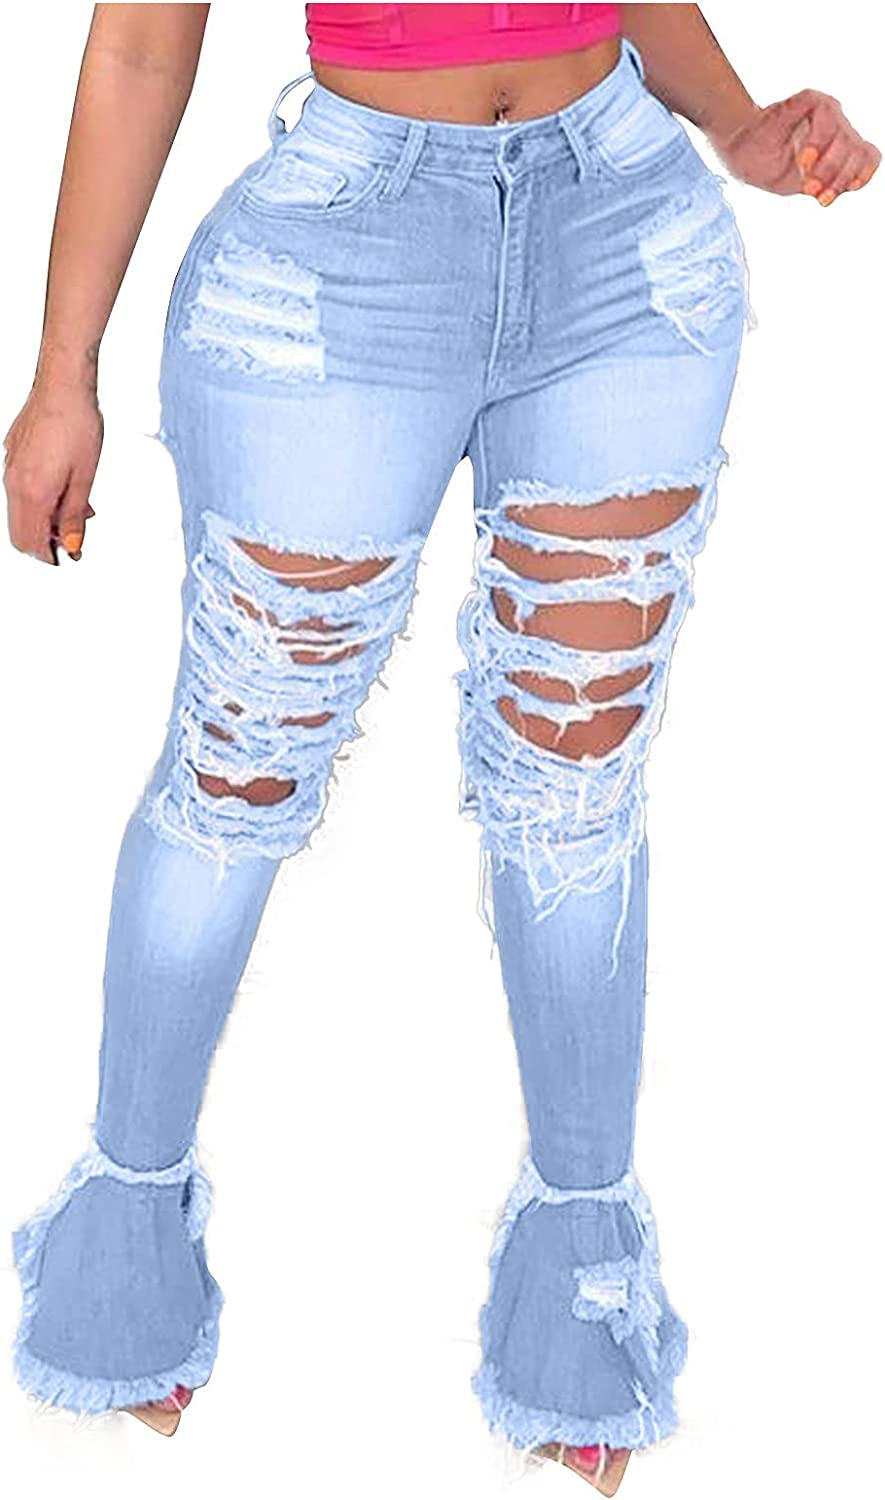 Amazingdays Bell Bottom Jeans for Women High Waist Ripped Jeans Womens Skinny Jeans Casual Trendy Denim Pants